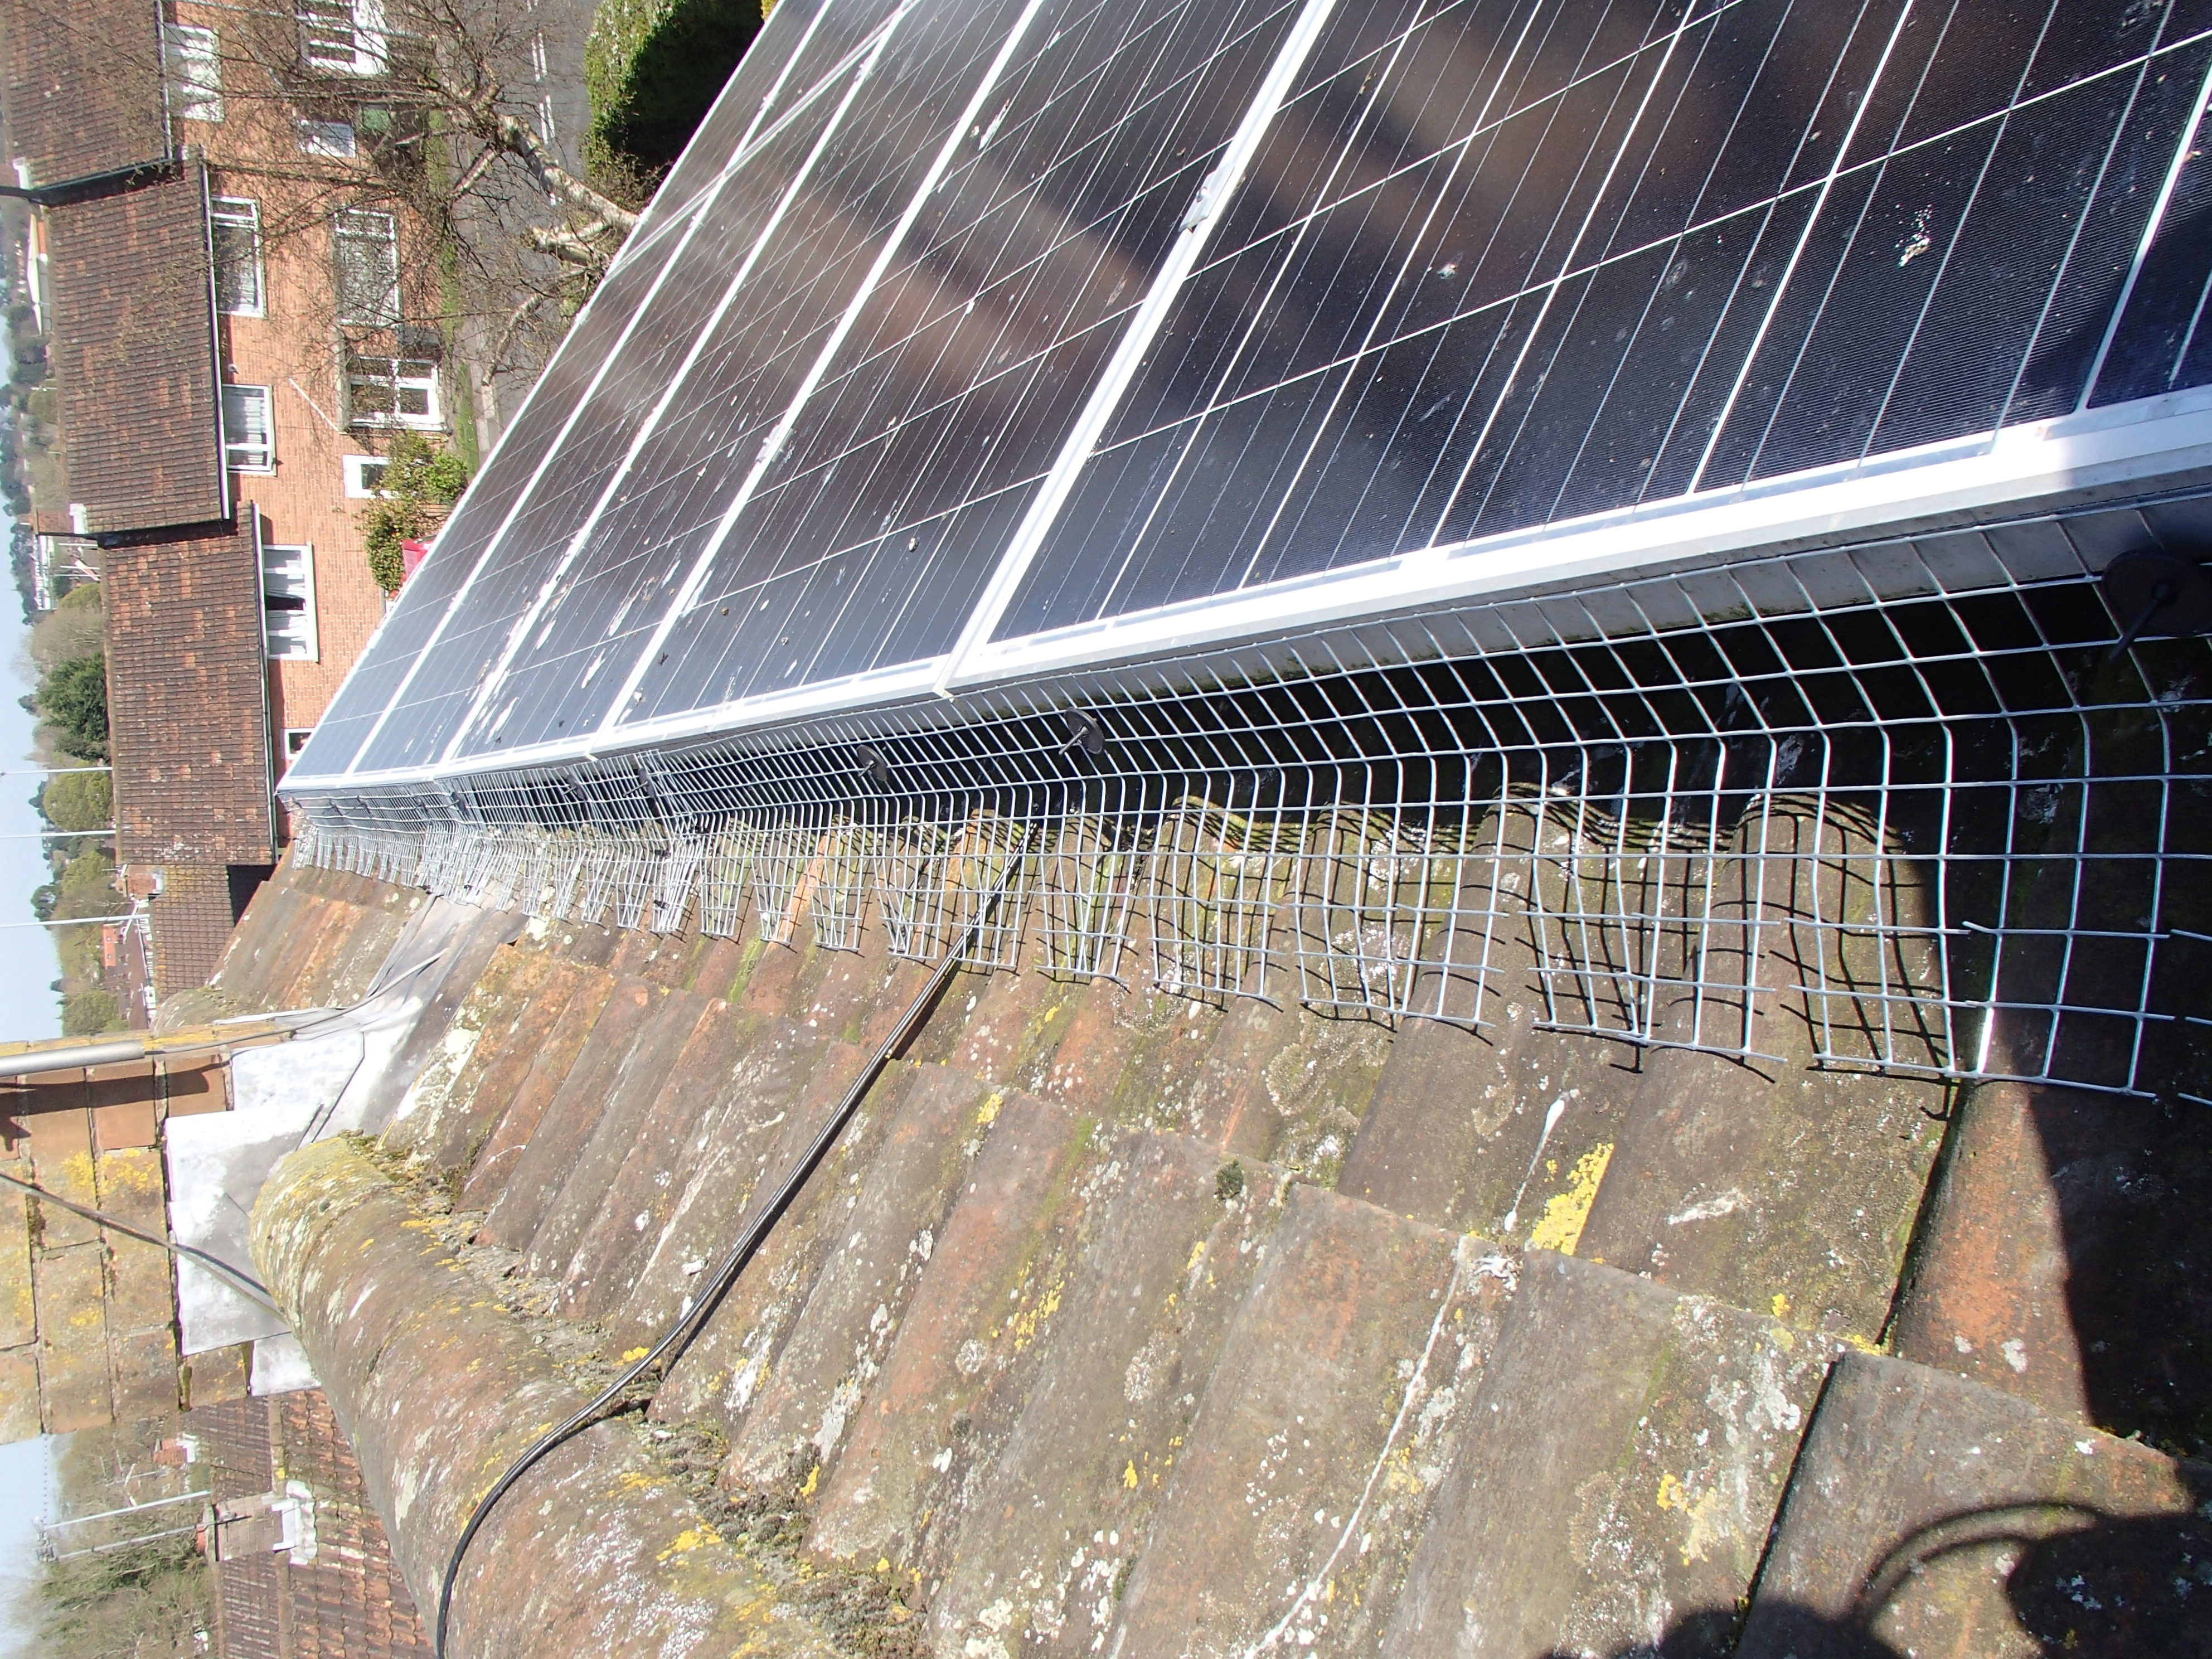 proofing solar panels from pigeons_3